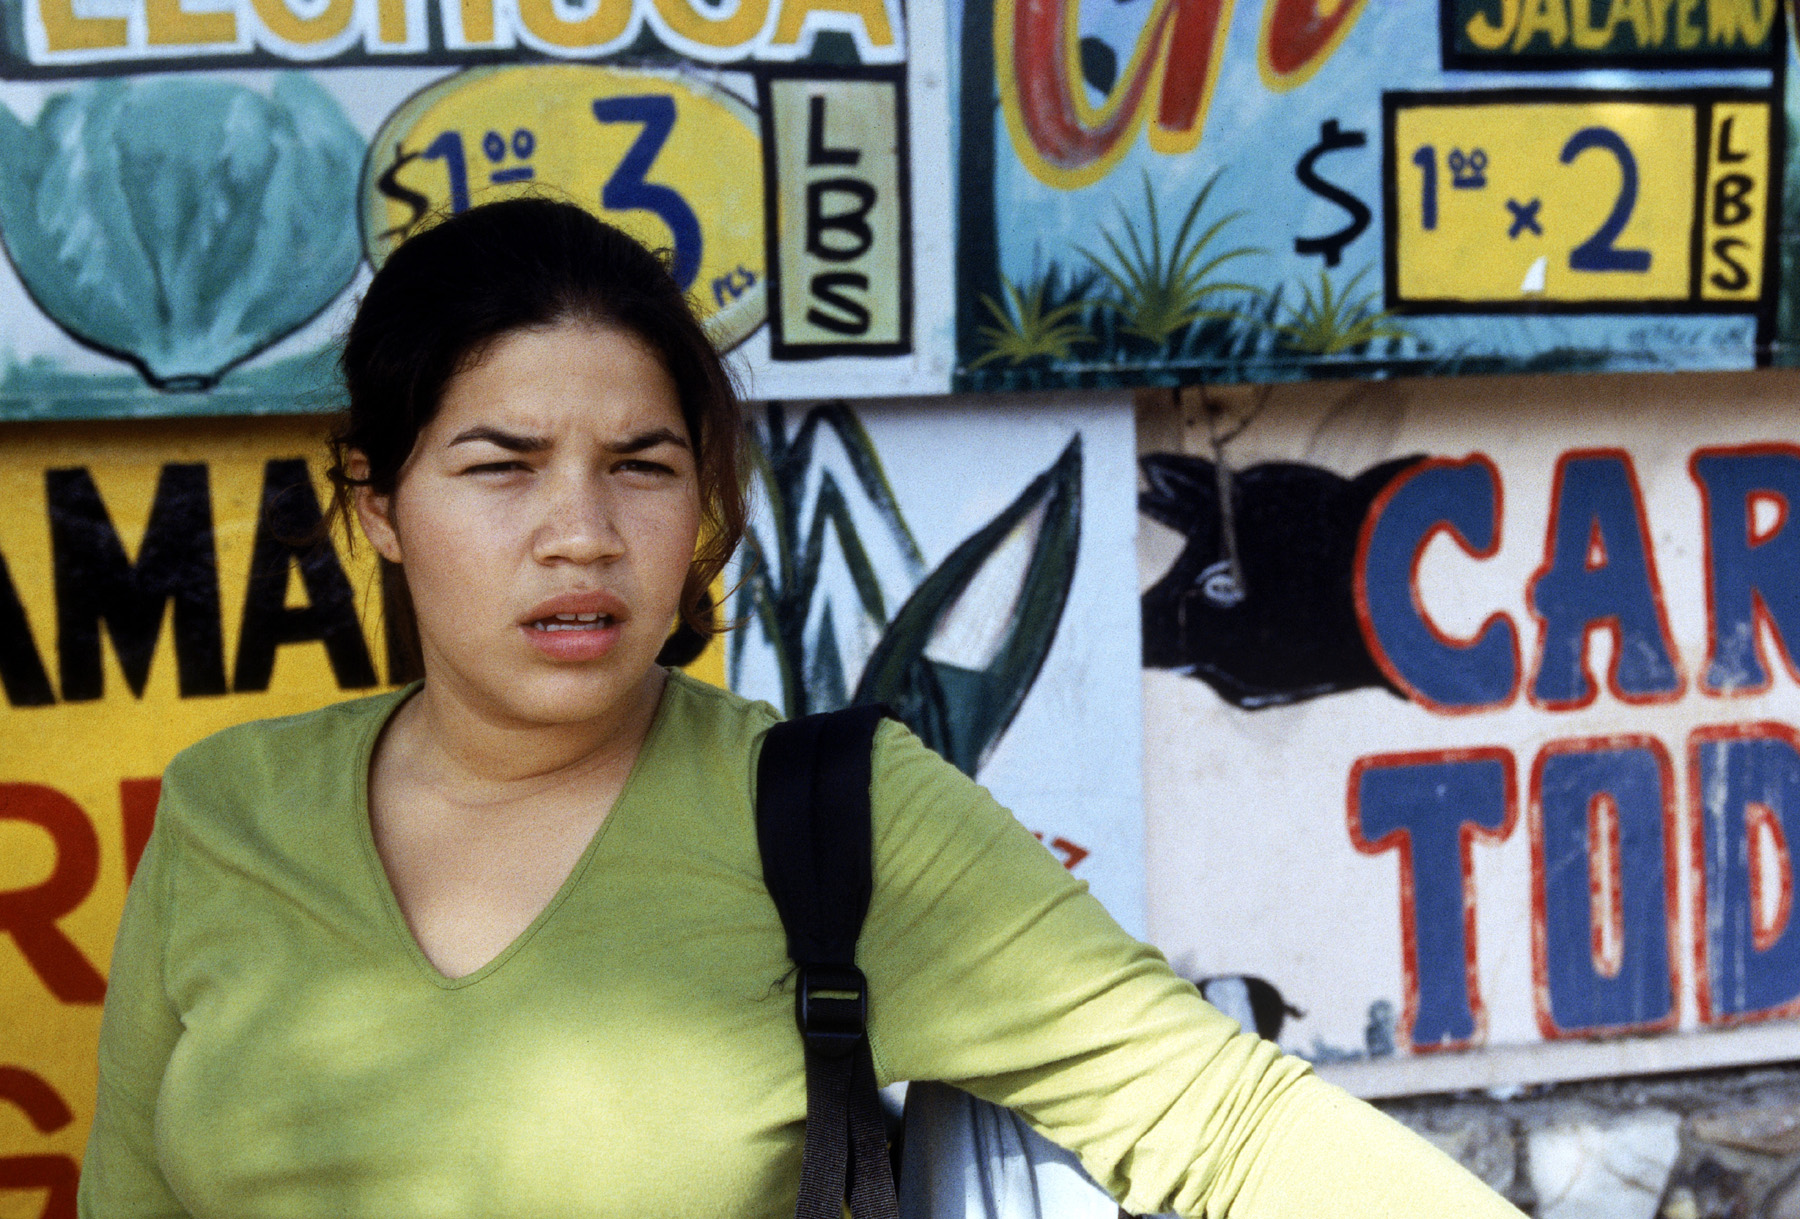 real women have curve Real women have curves (160) imdb 70 86 min 2002 pg-13 subtitles and closed captions a mexican-american teen (america ferrera) struggles to strike a balance between her college ambitions and the pull of her traditional cultural heritage in this delightful coming-of-age film.